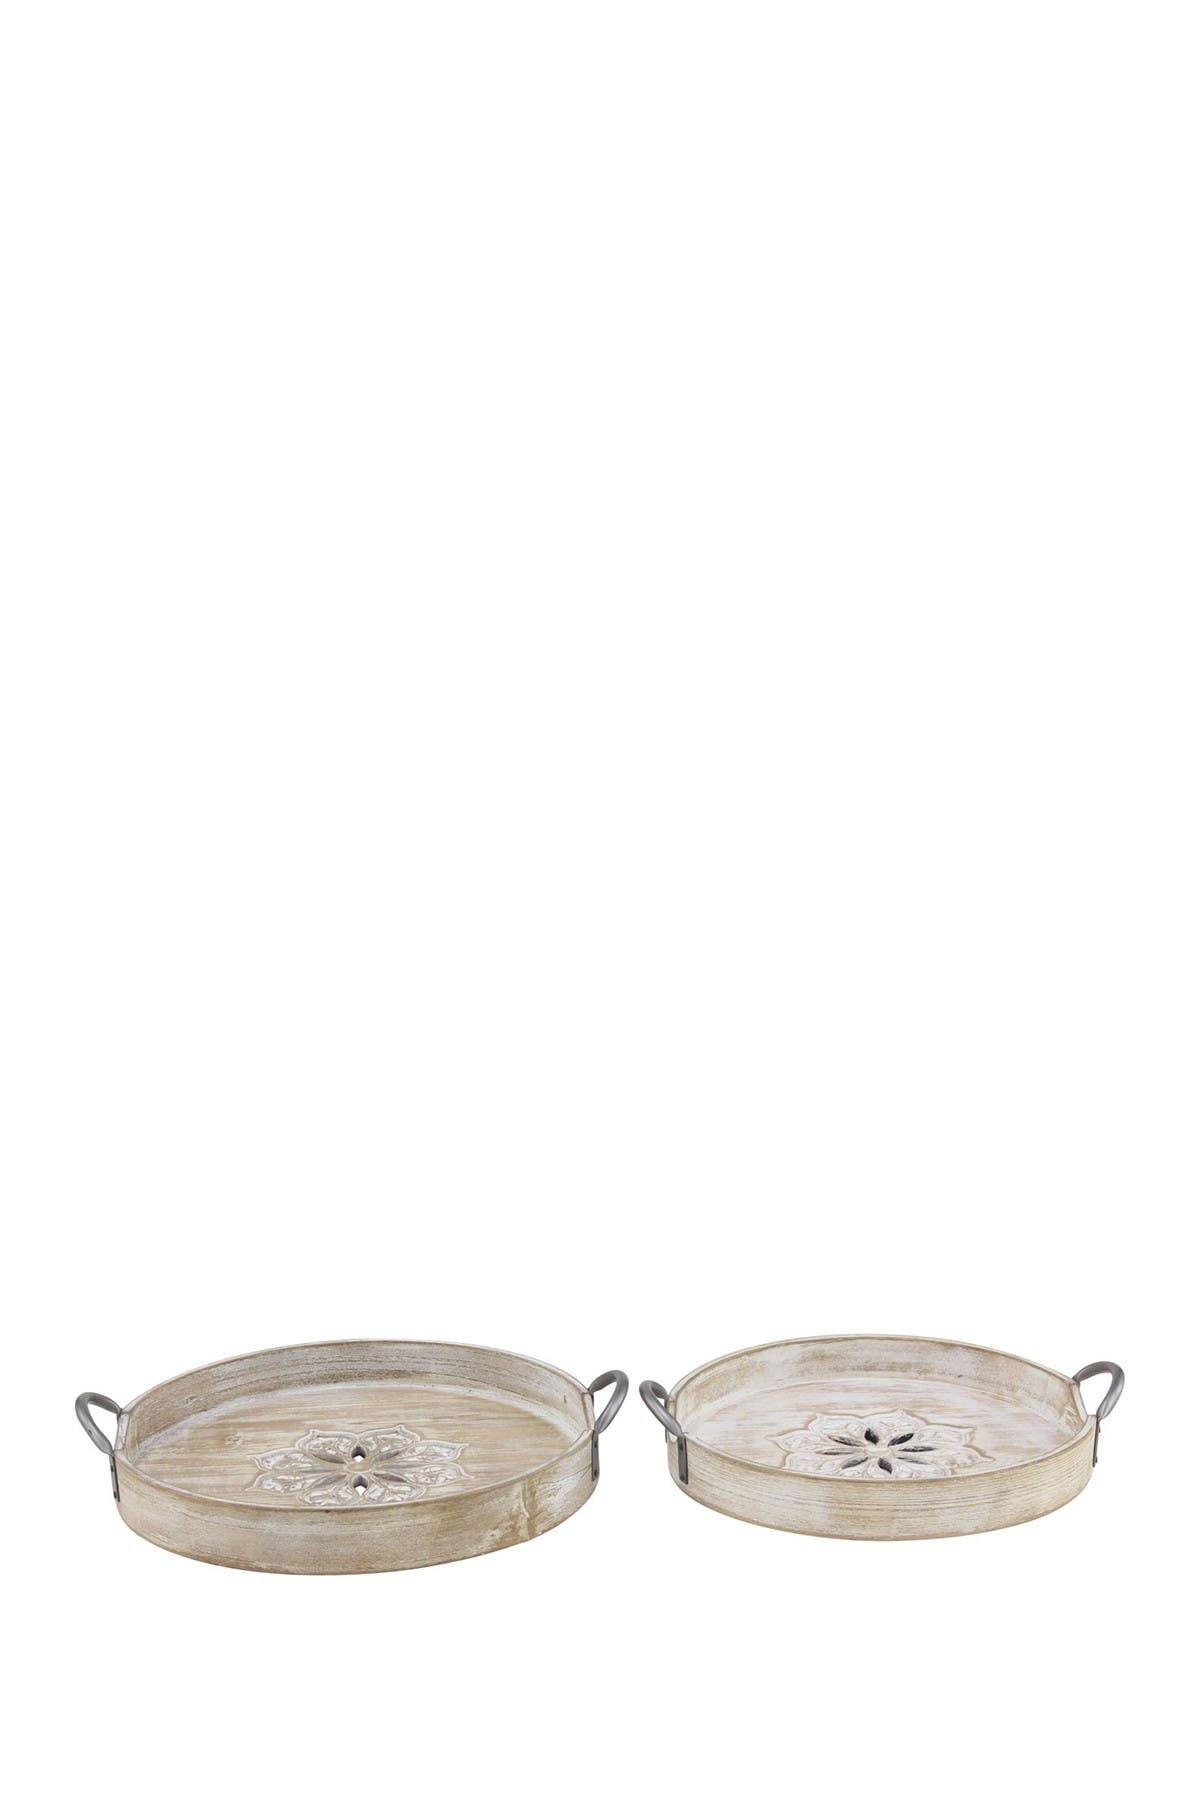 Image of Willow Row Brown Wood Metal Tray - Set of 2